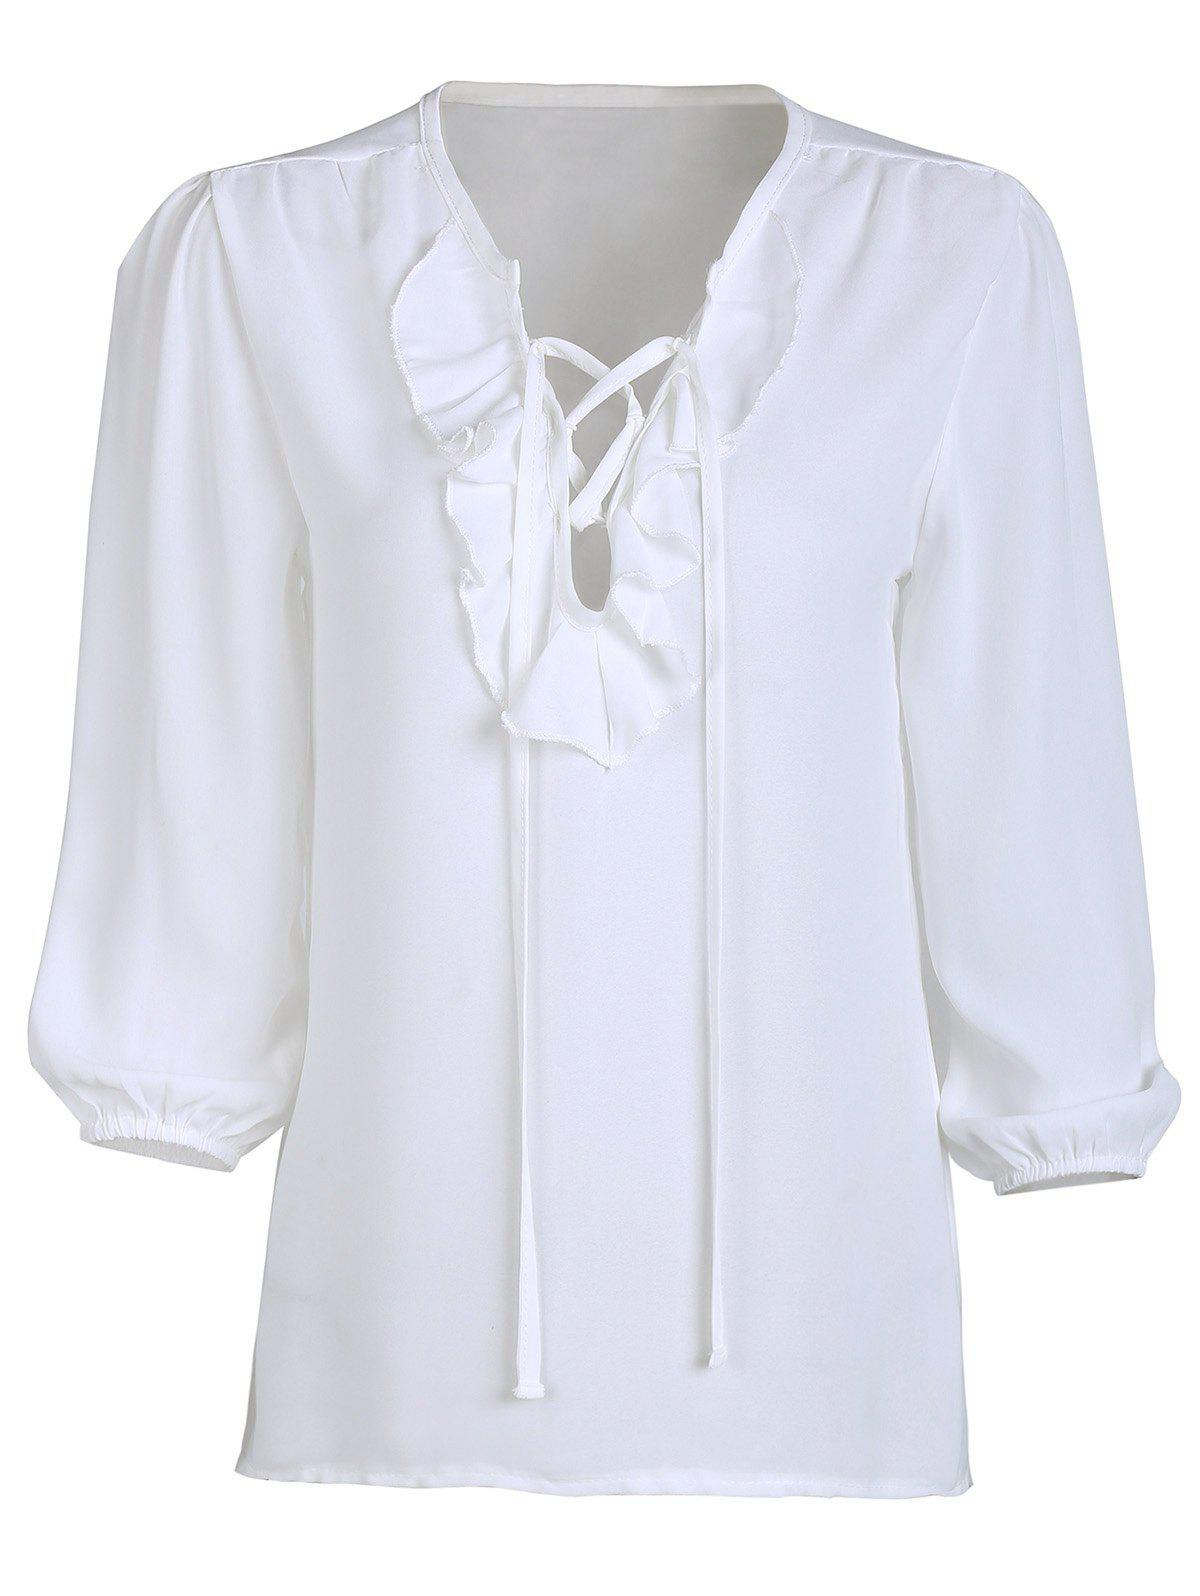 Trendy V-Neck Lace-Up Chiffon 3/4 Sleeve Blouse For Women - WHITE M